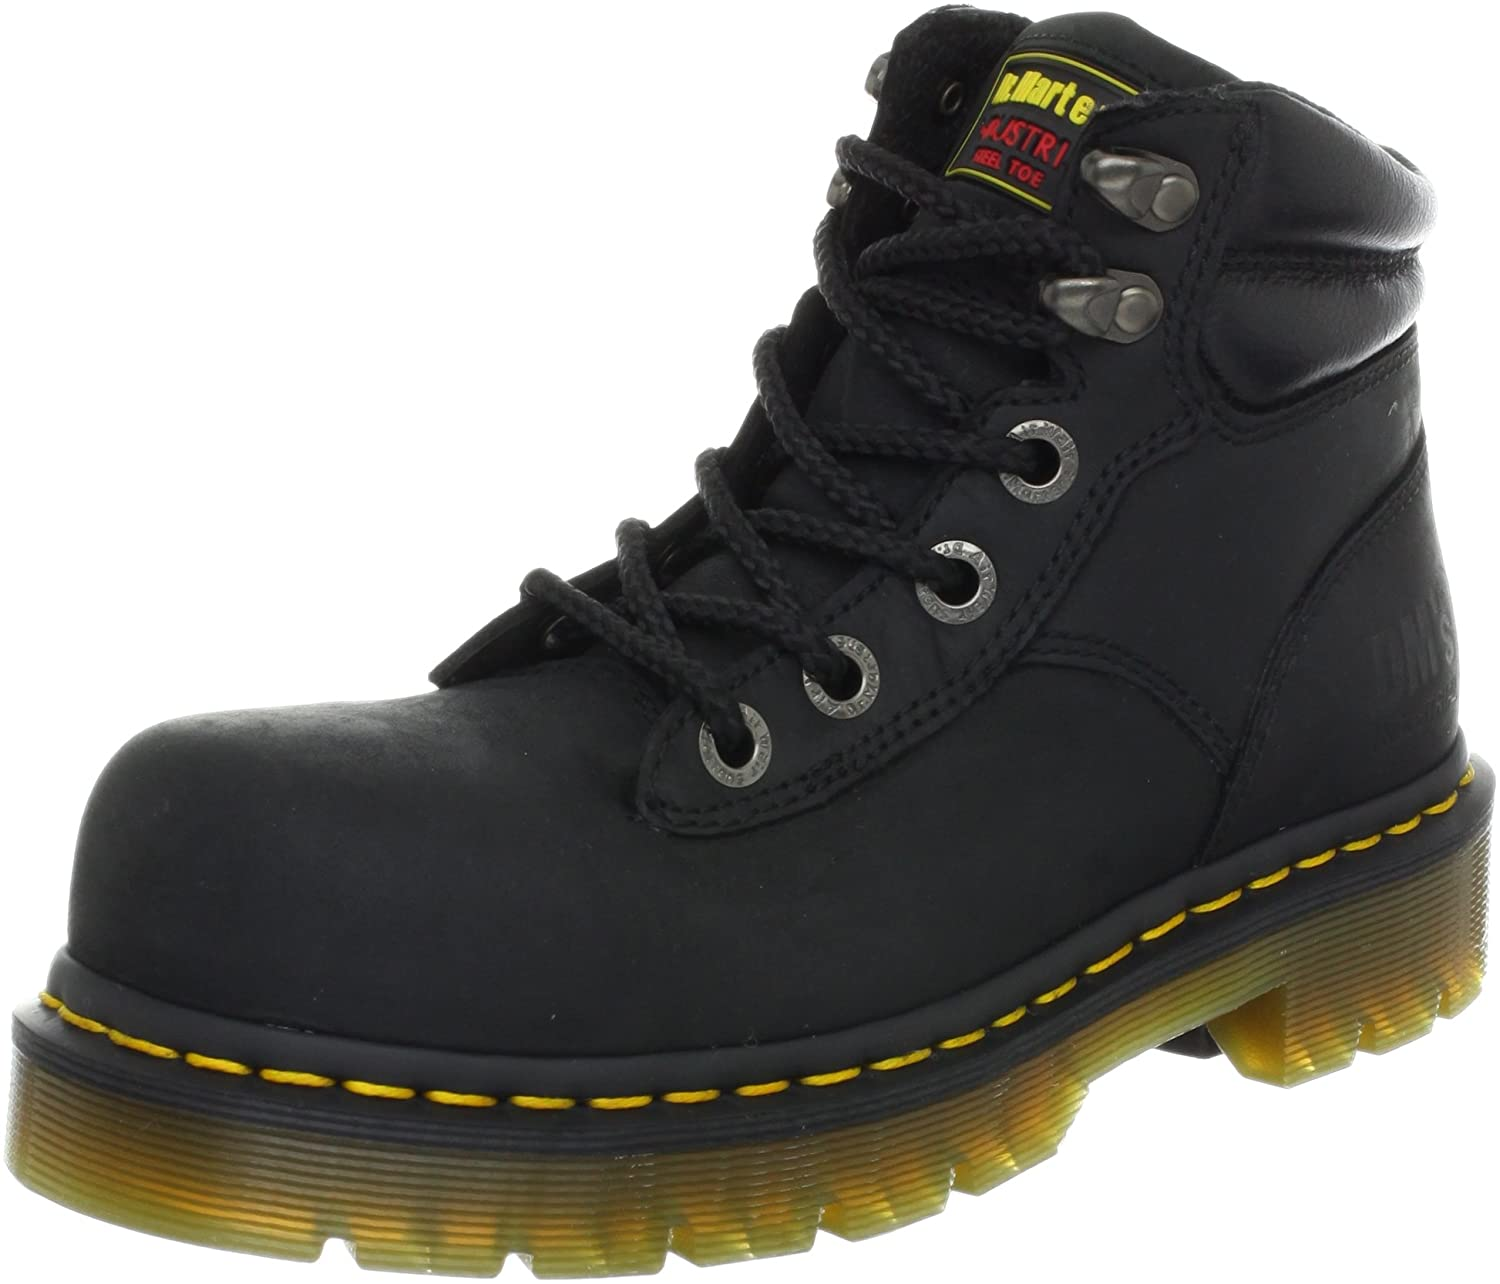 Dr. Martens Burham ST Work Boot B005EBRTAO 5 UK/7 M US Women's/6 M US Men's|Black Industrial Greasy